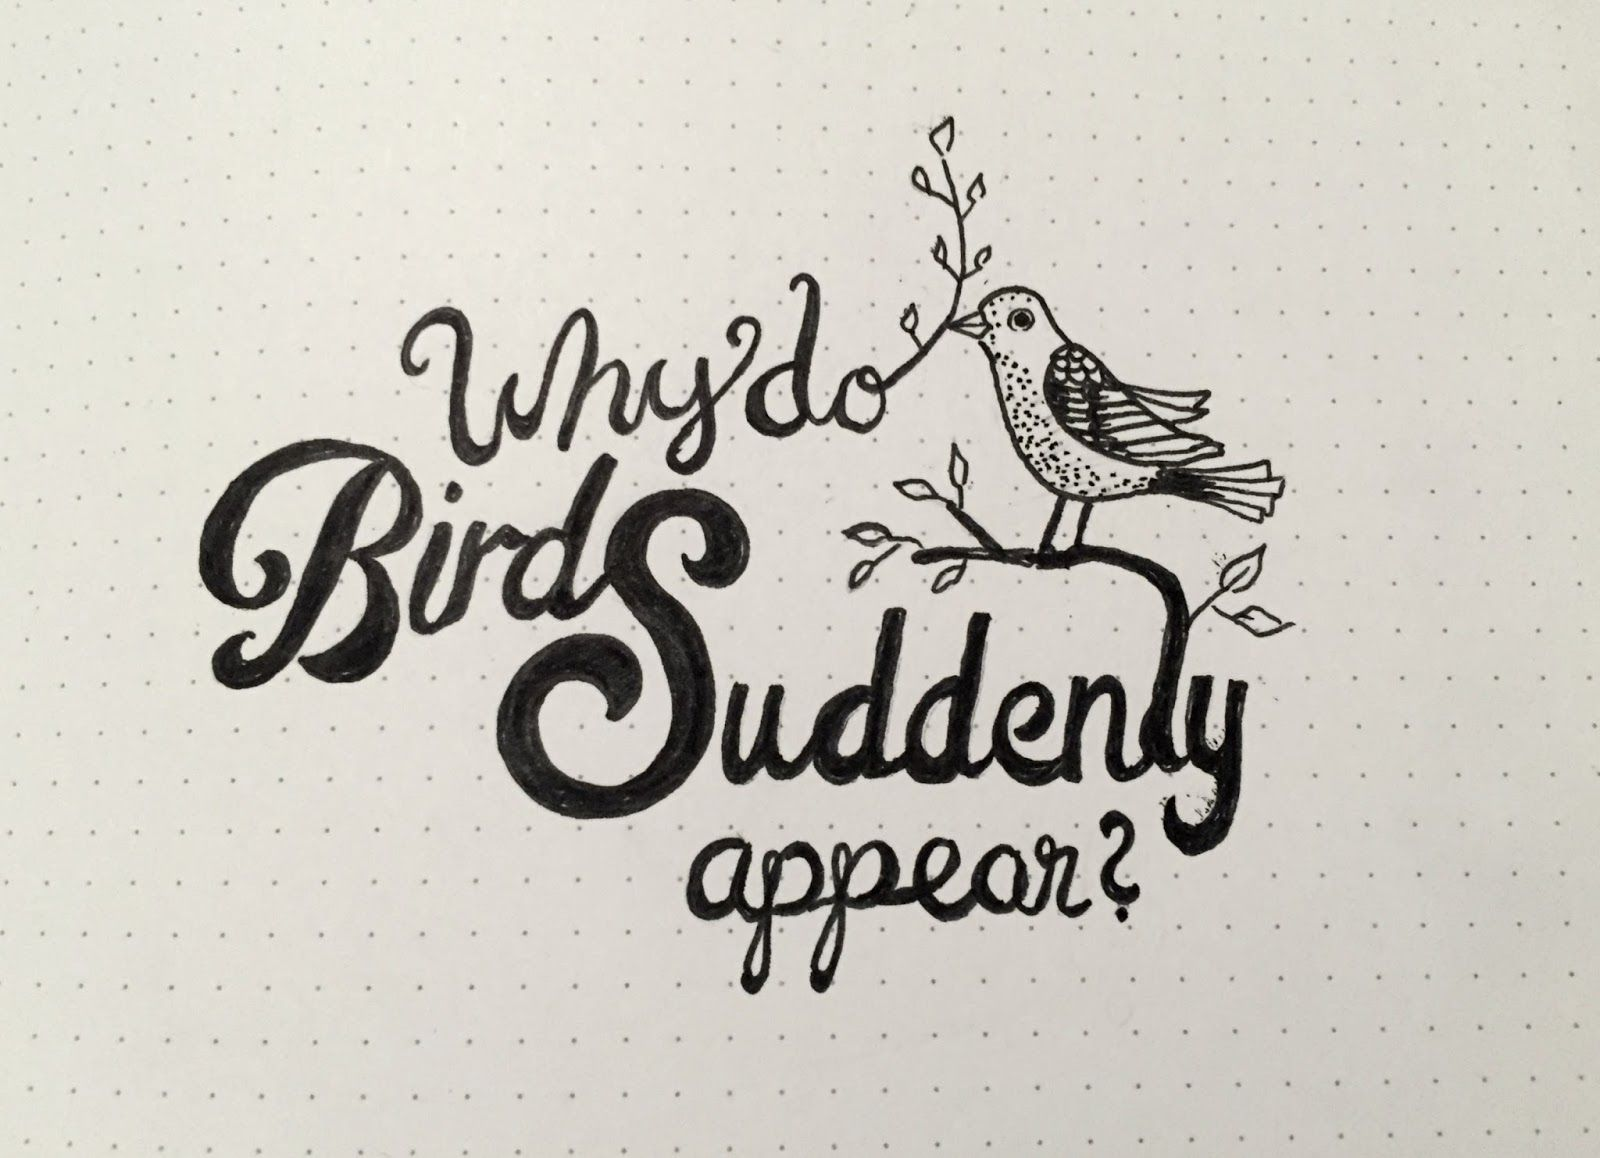 Why do birds suddenly appear